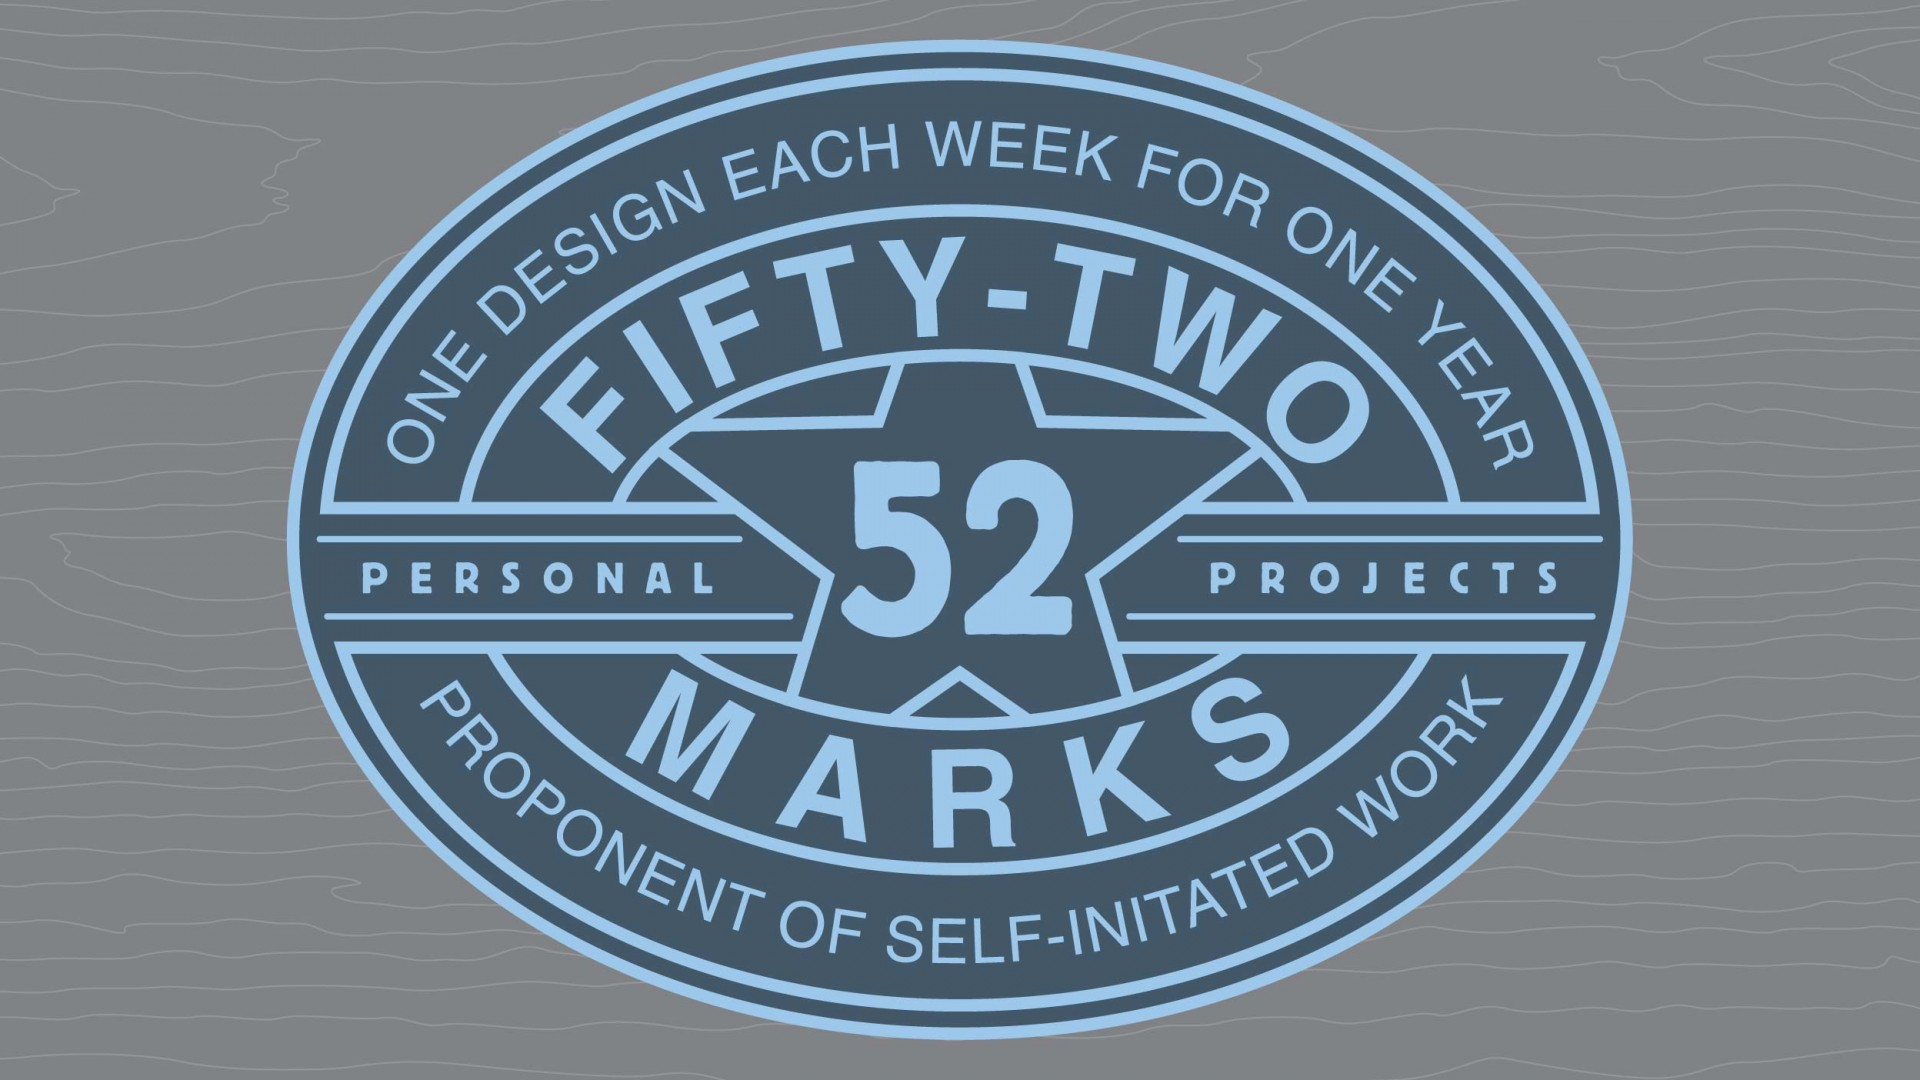 Main logo for my 52 Marks personal project.